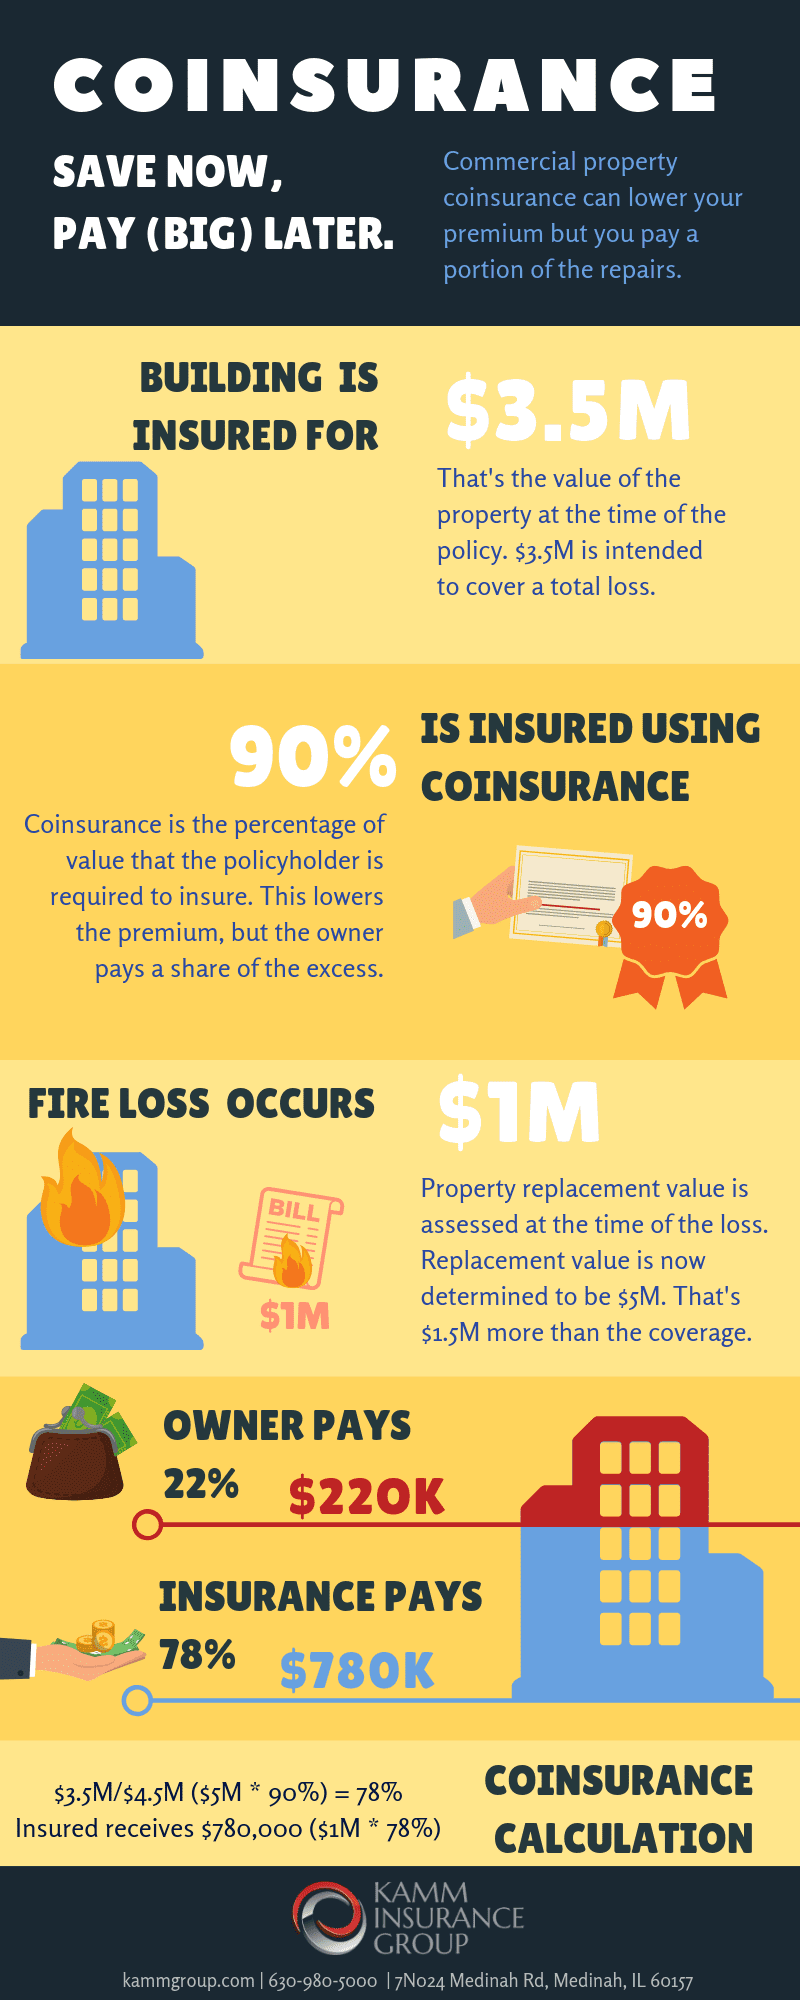 kamm coinsurance infographic